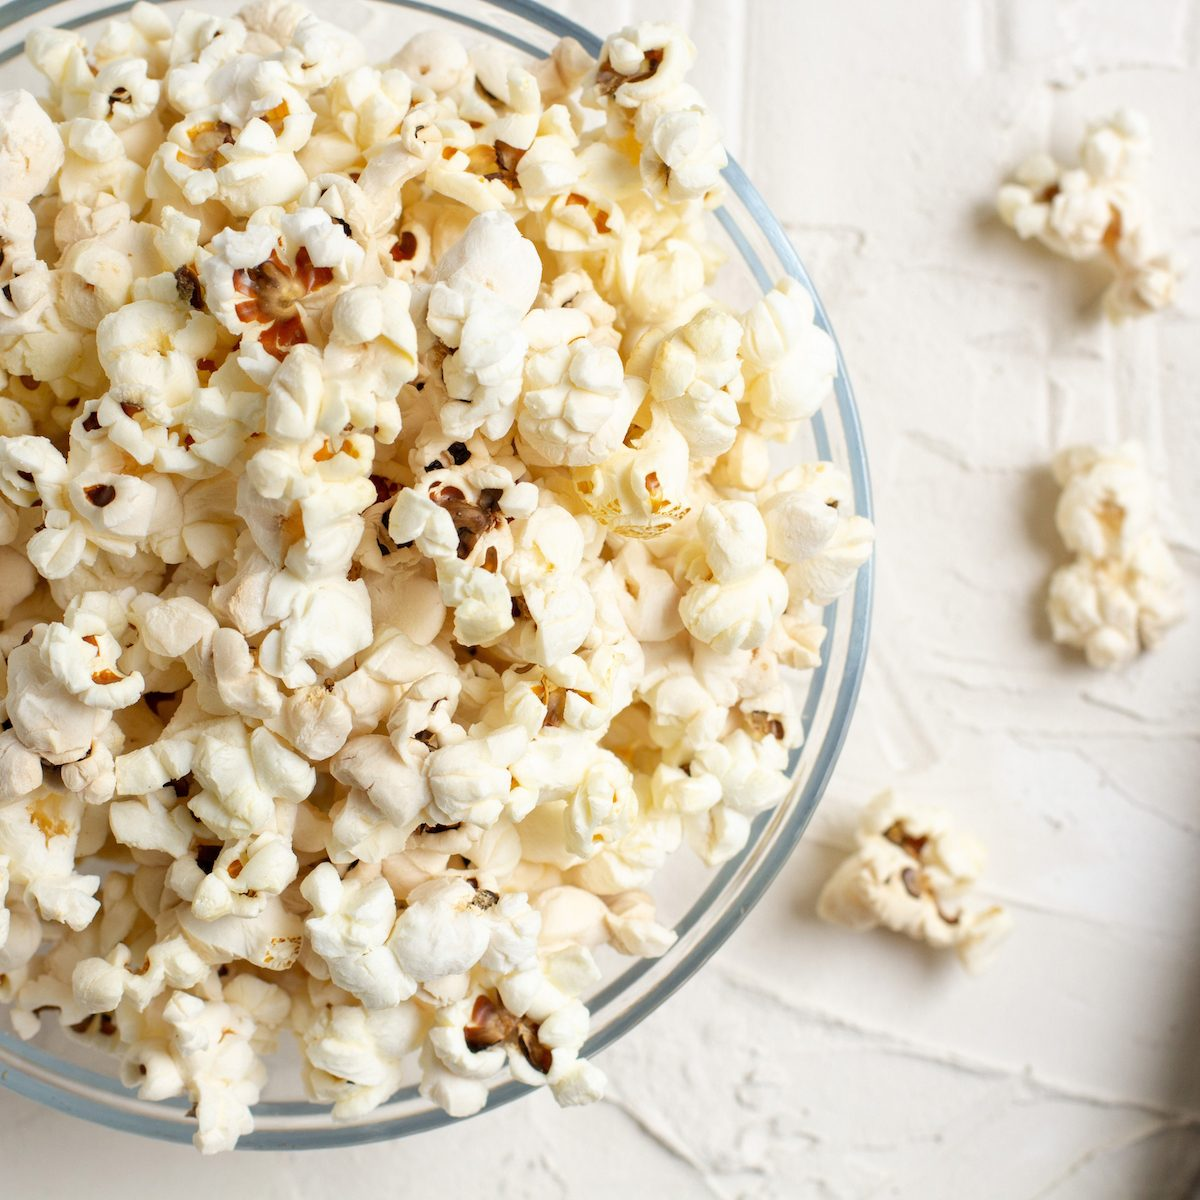 Popcorn in a transparent glass bowl on a white table with few pieces of popcorn beside the bowl.